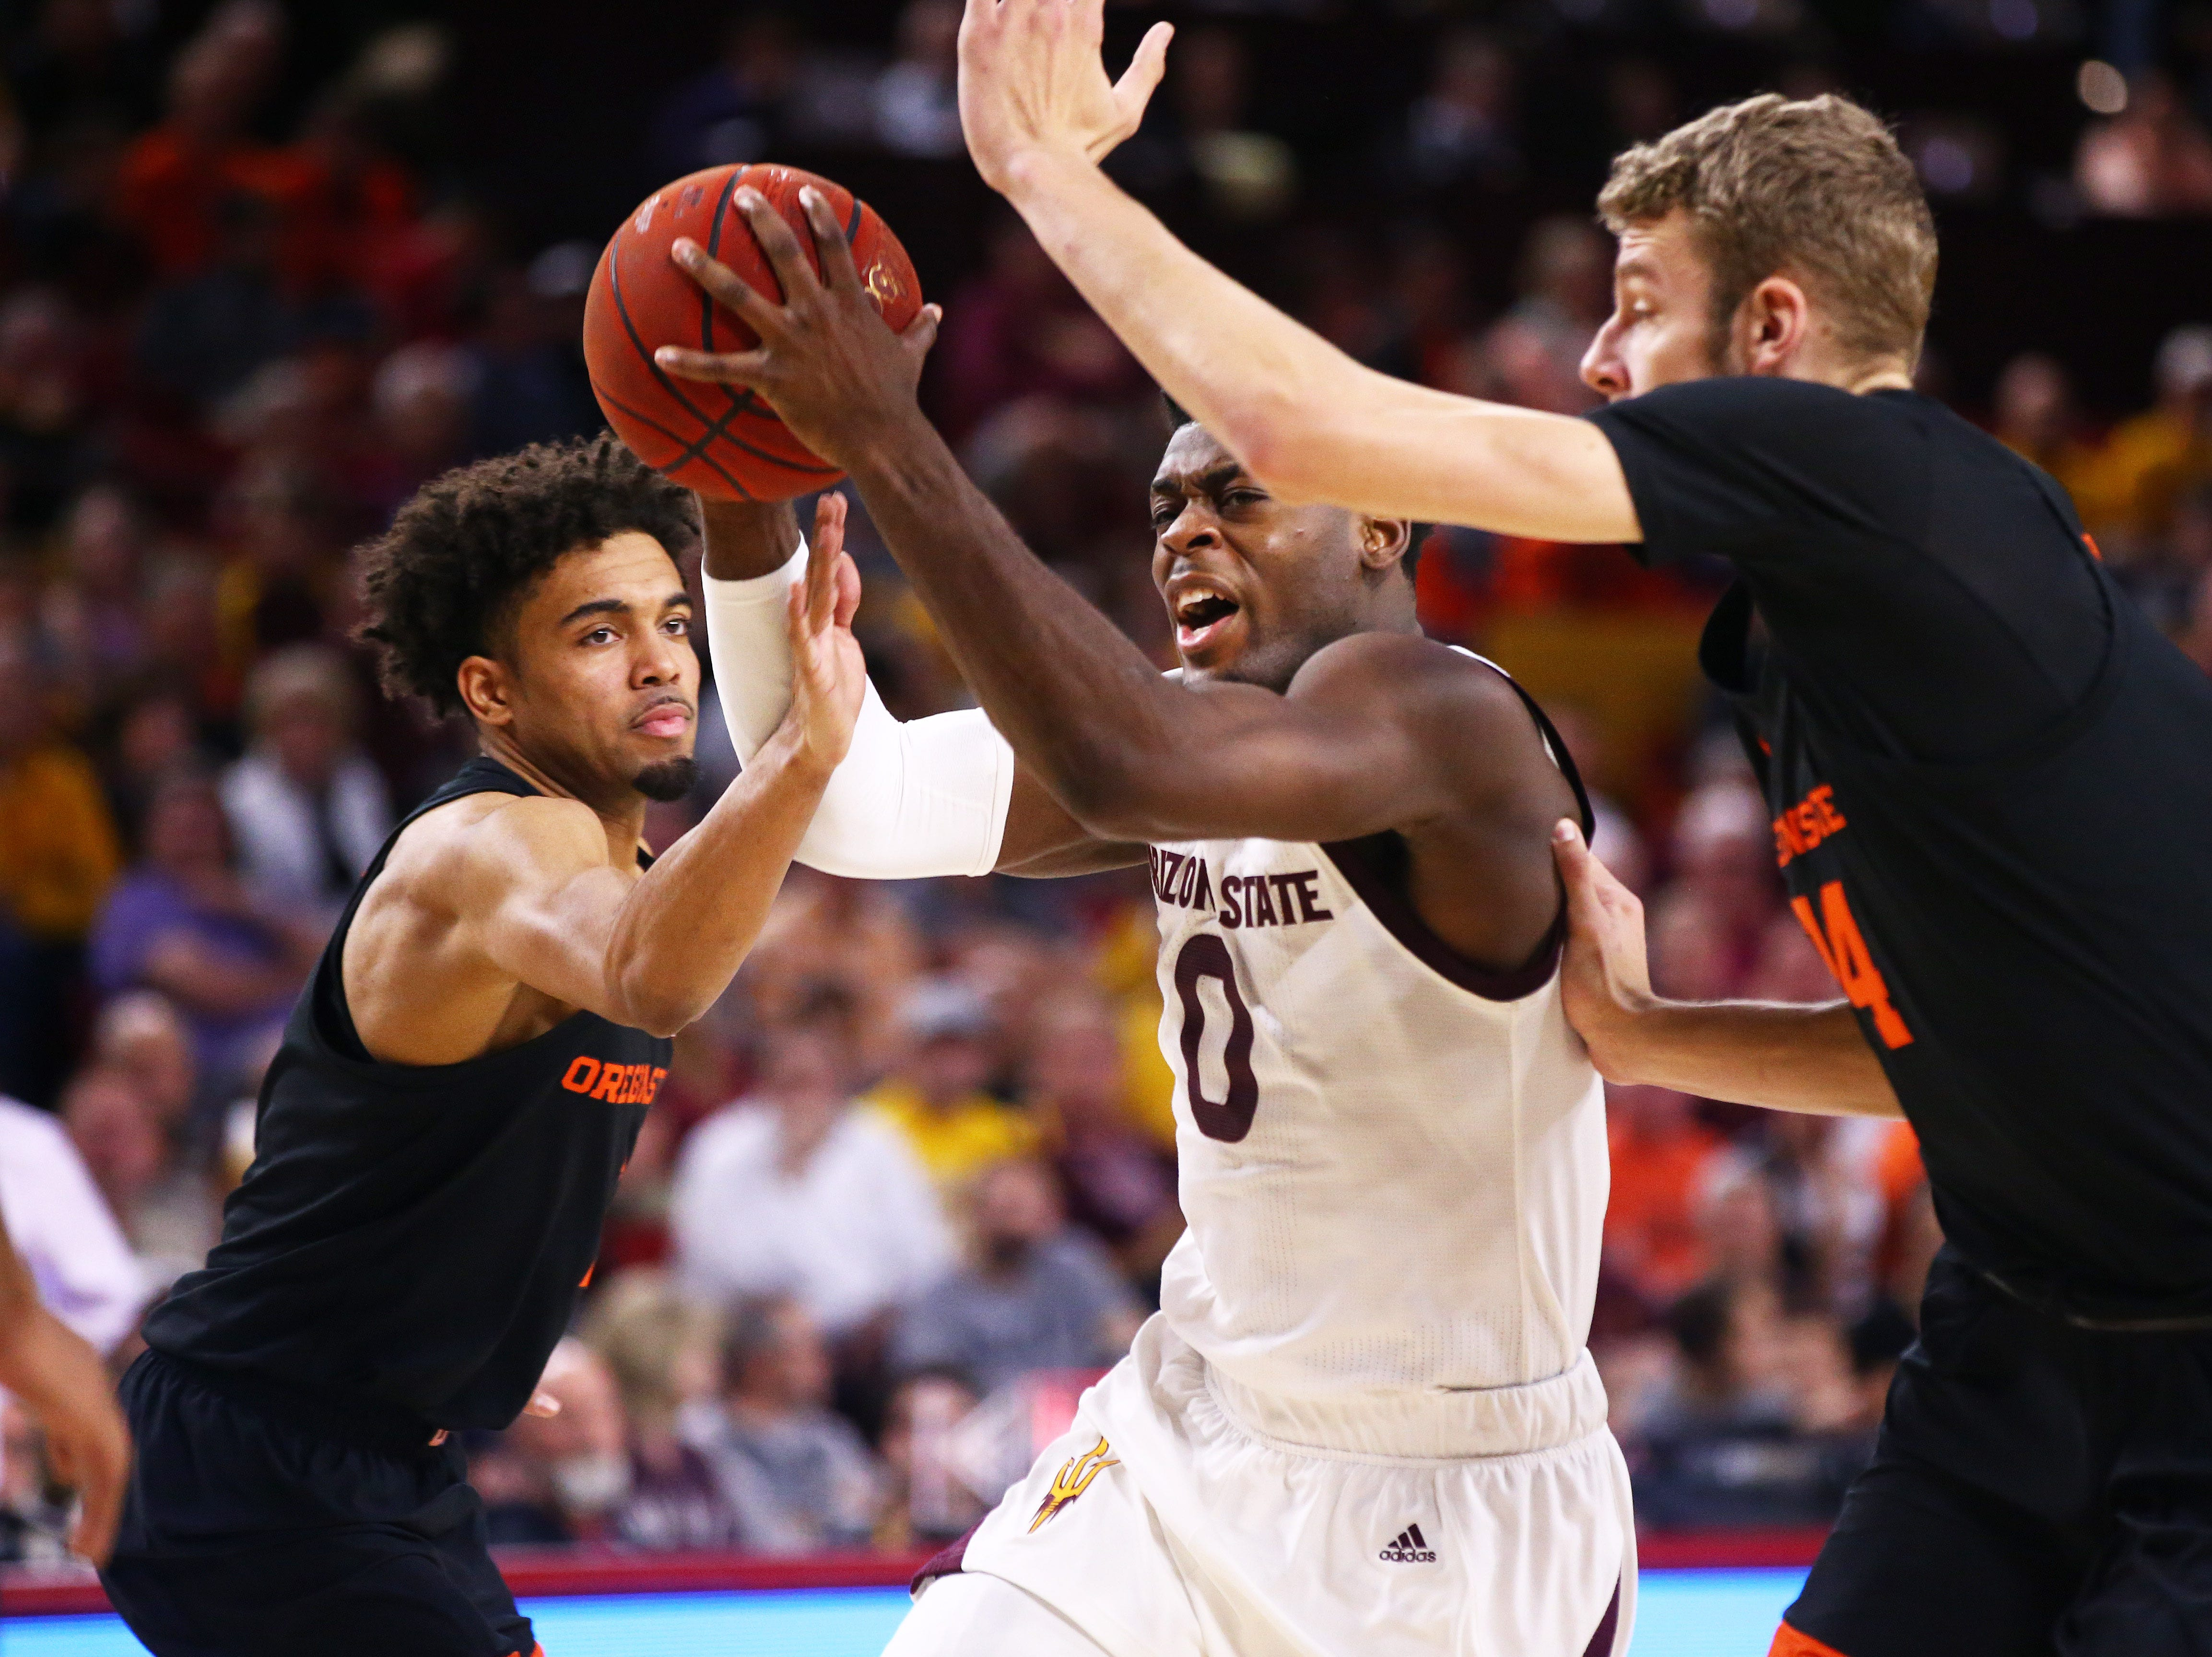 Arizona State Sun Devils guard Luguentz Dort drives to the lane against the Oregon State Beavers in the second half on Jan. 17 at Wells Fargo Arena in Tempe.